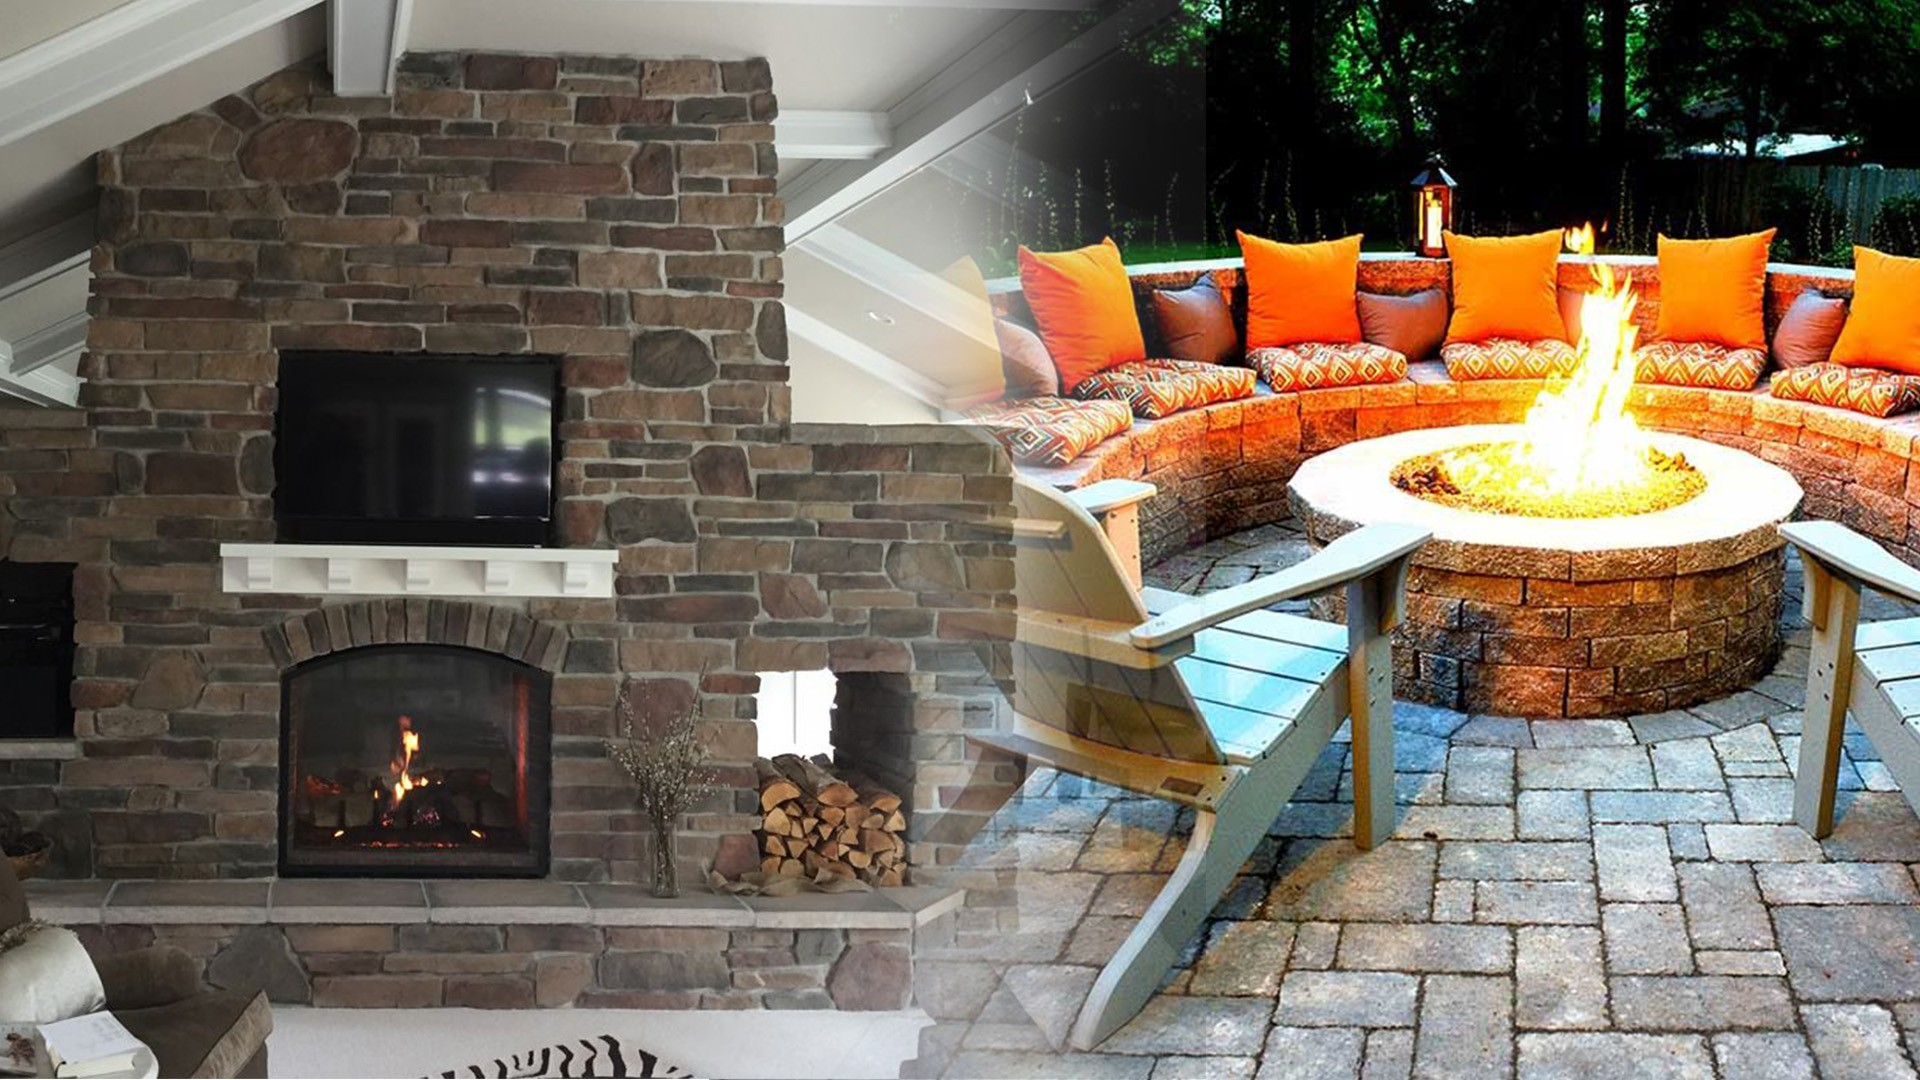 Outdoor Fireplaces & Fire Pits-Corpus Christi TX Landscape Designs & Outdoor Living Areas-We offer Landscape Design, Outdoor Patios & Pergolas, Outdoor Living Spaces, Stonescapes, Residential & Commercial Landscaping, Irrigation Installation & Repairs, Drainage Systems, Landscape Lighting, Outdoor Living Spaces, Tree Service, Lawn Service, and more.